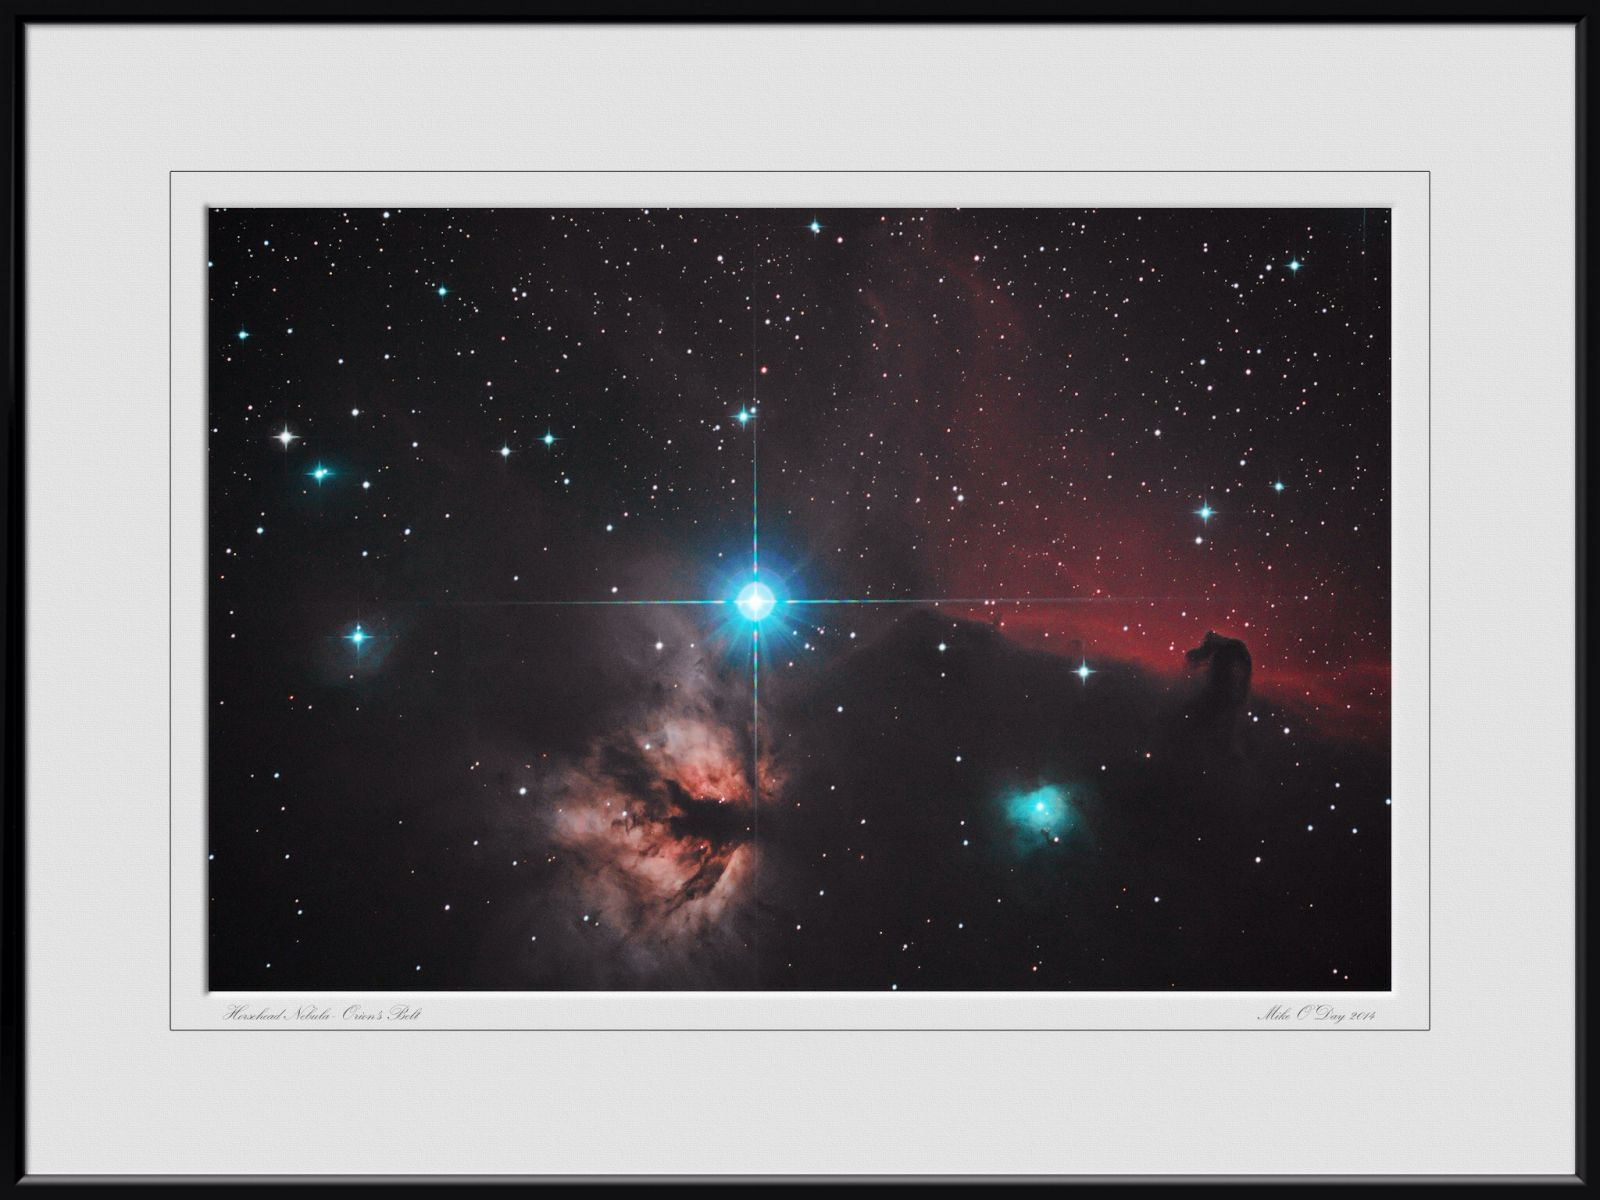 Alnitak, Flame and Horsehead nebula